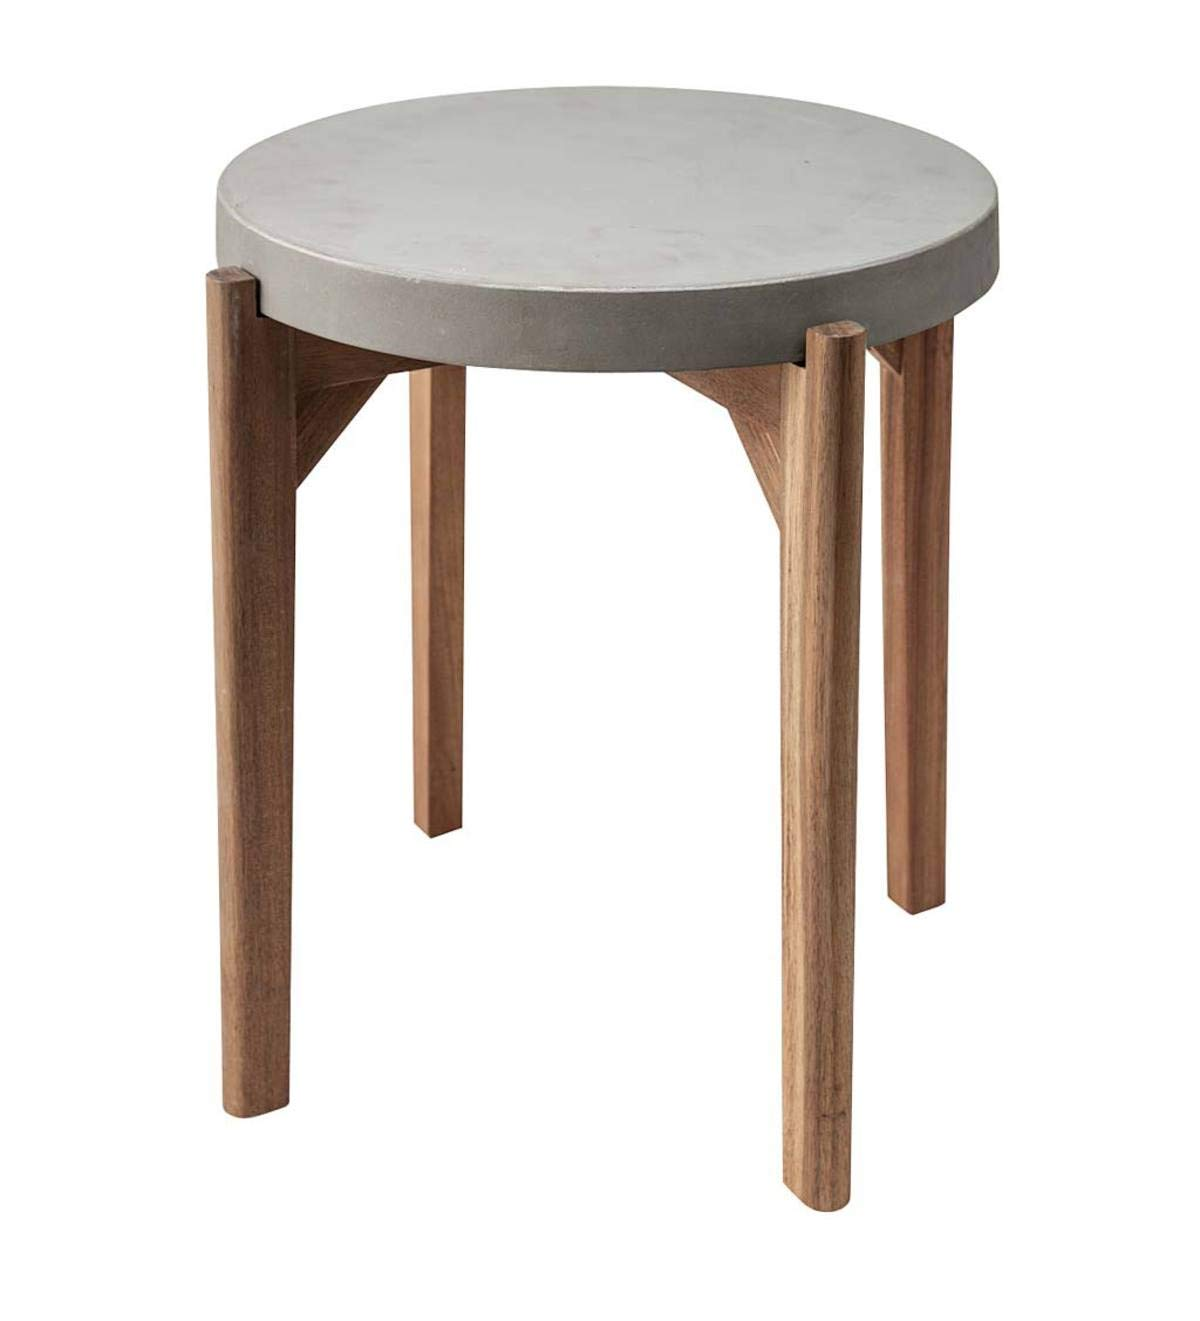 Cement side table Concrete Block Amazoncom Wind Weather Cement And Wood Side Table 1925 Dia 1775 Garden Outdoor Amazoncom Amazoncom Wind Weather Cement And Wood Side Table 1925 Dia